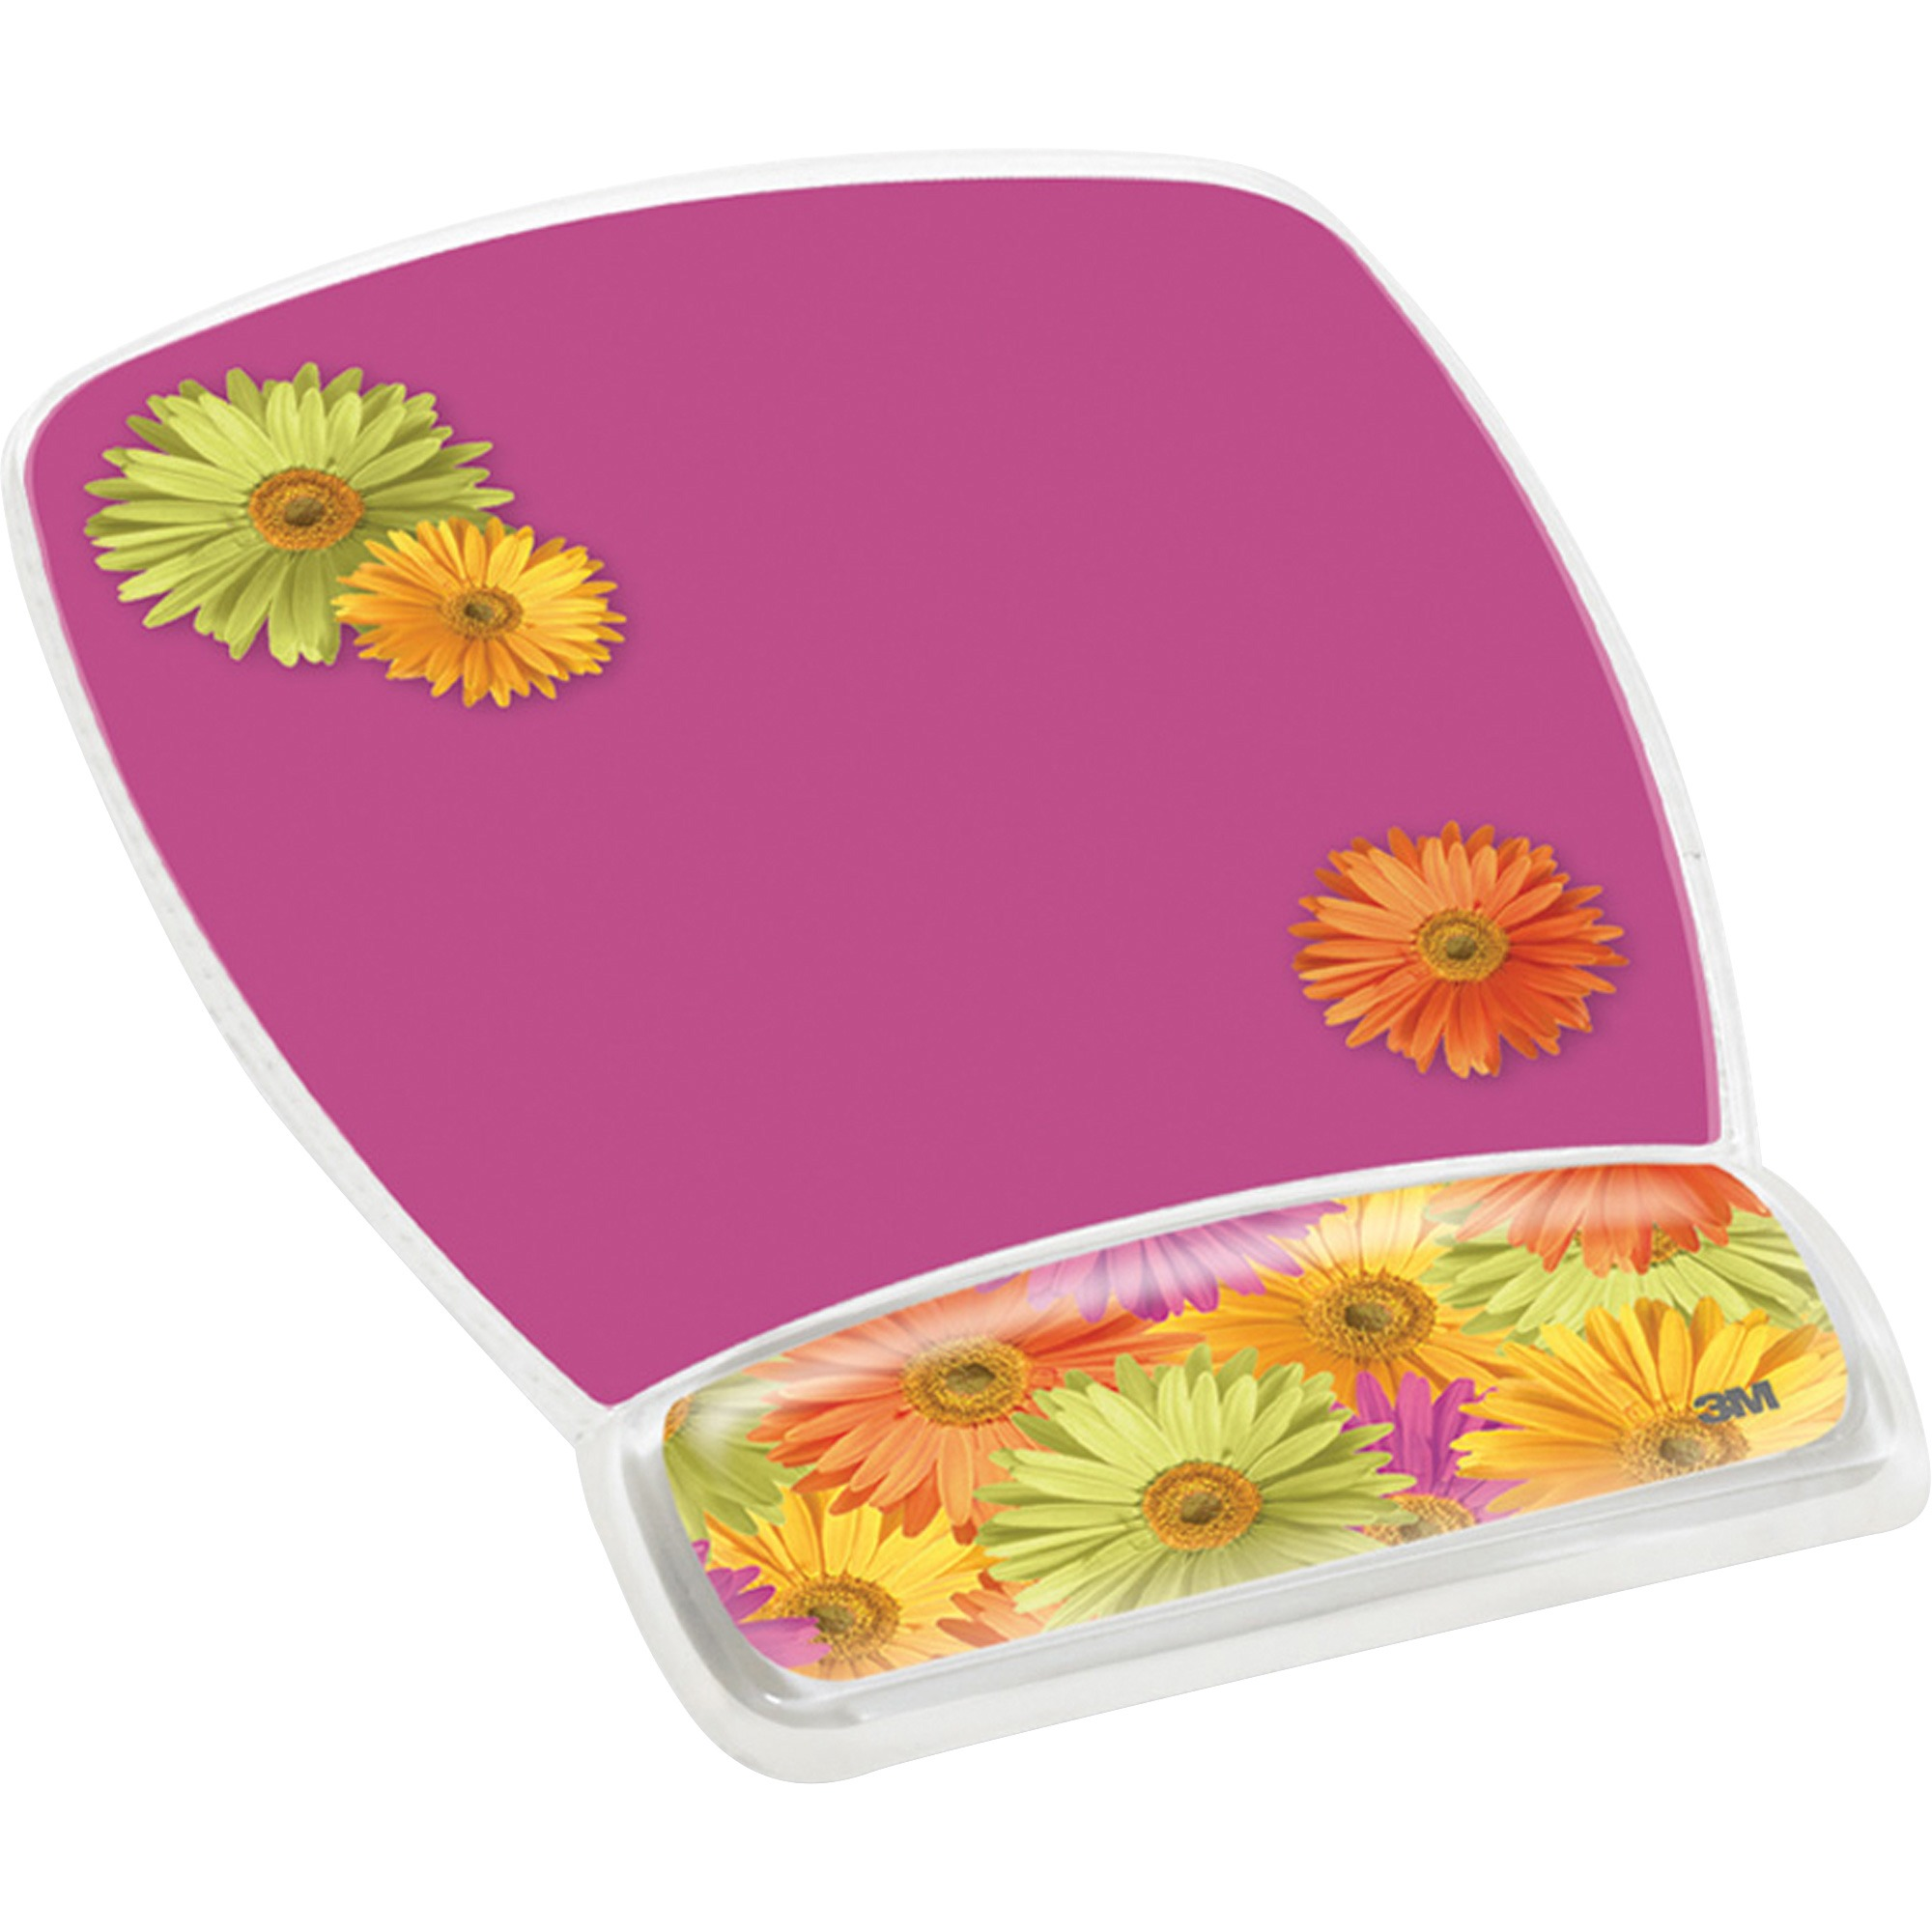 3M Gel Mouse Pad by 3M